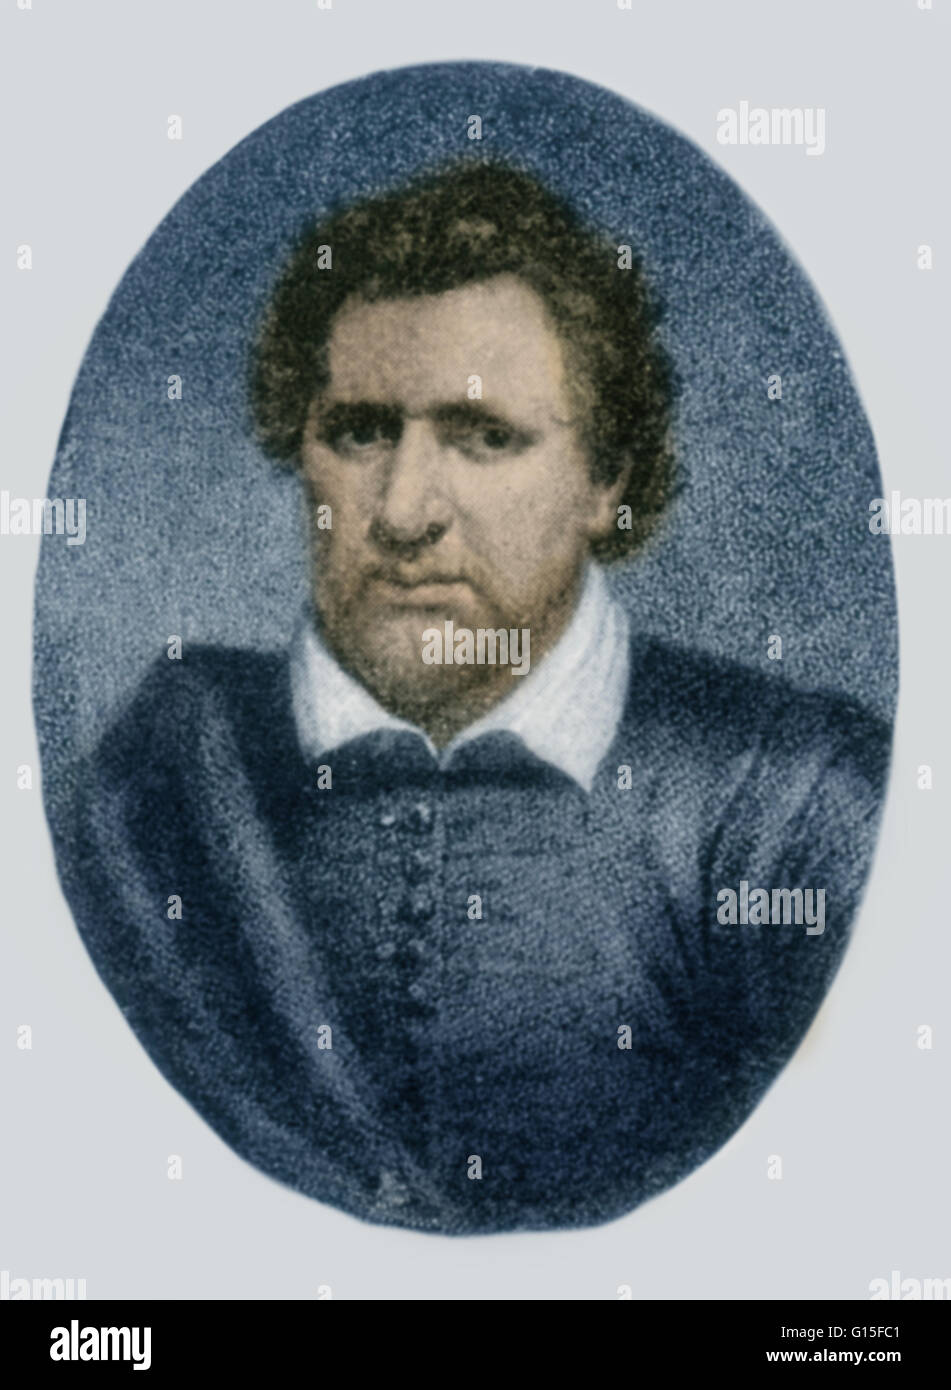 Benjamin Jonson ( June 11, 1572 - August 6, 1637) was a, English playwright, poet, and literary critic, of the 17th - Stock Image